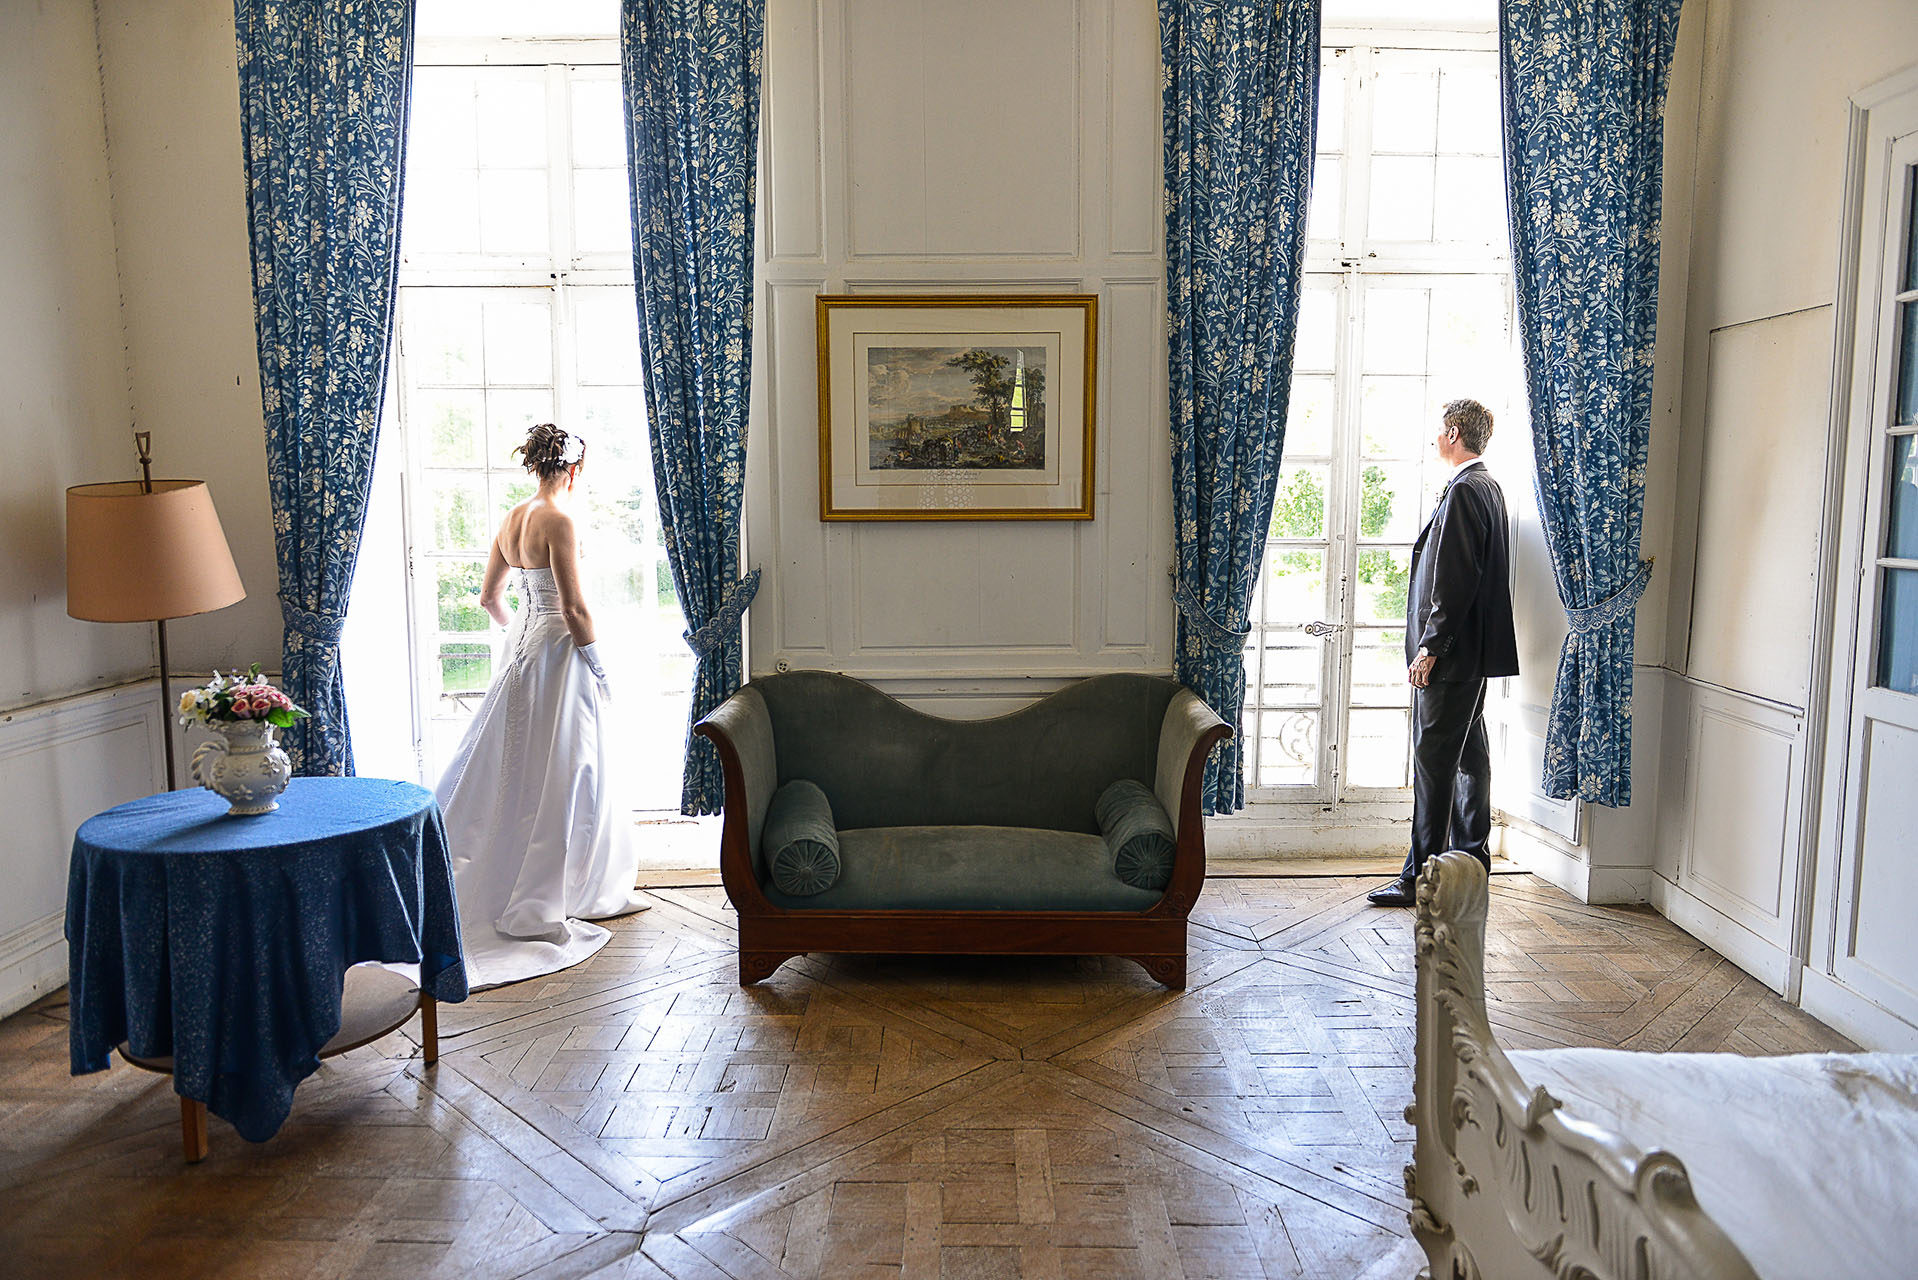 photos-mariage-photographe-ile-de-france-hauts-de-seine